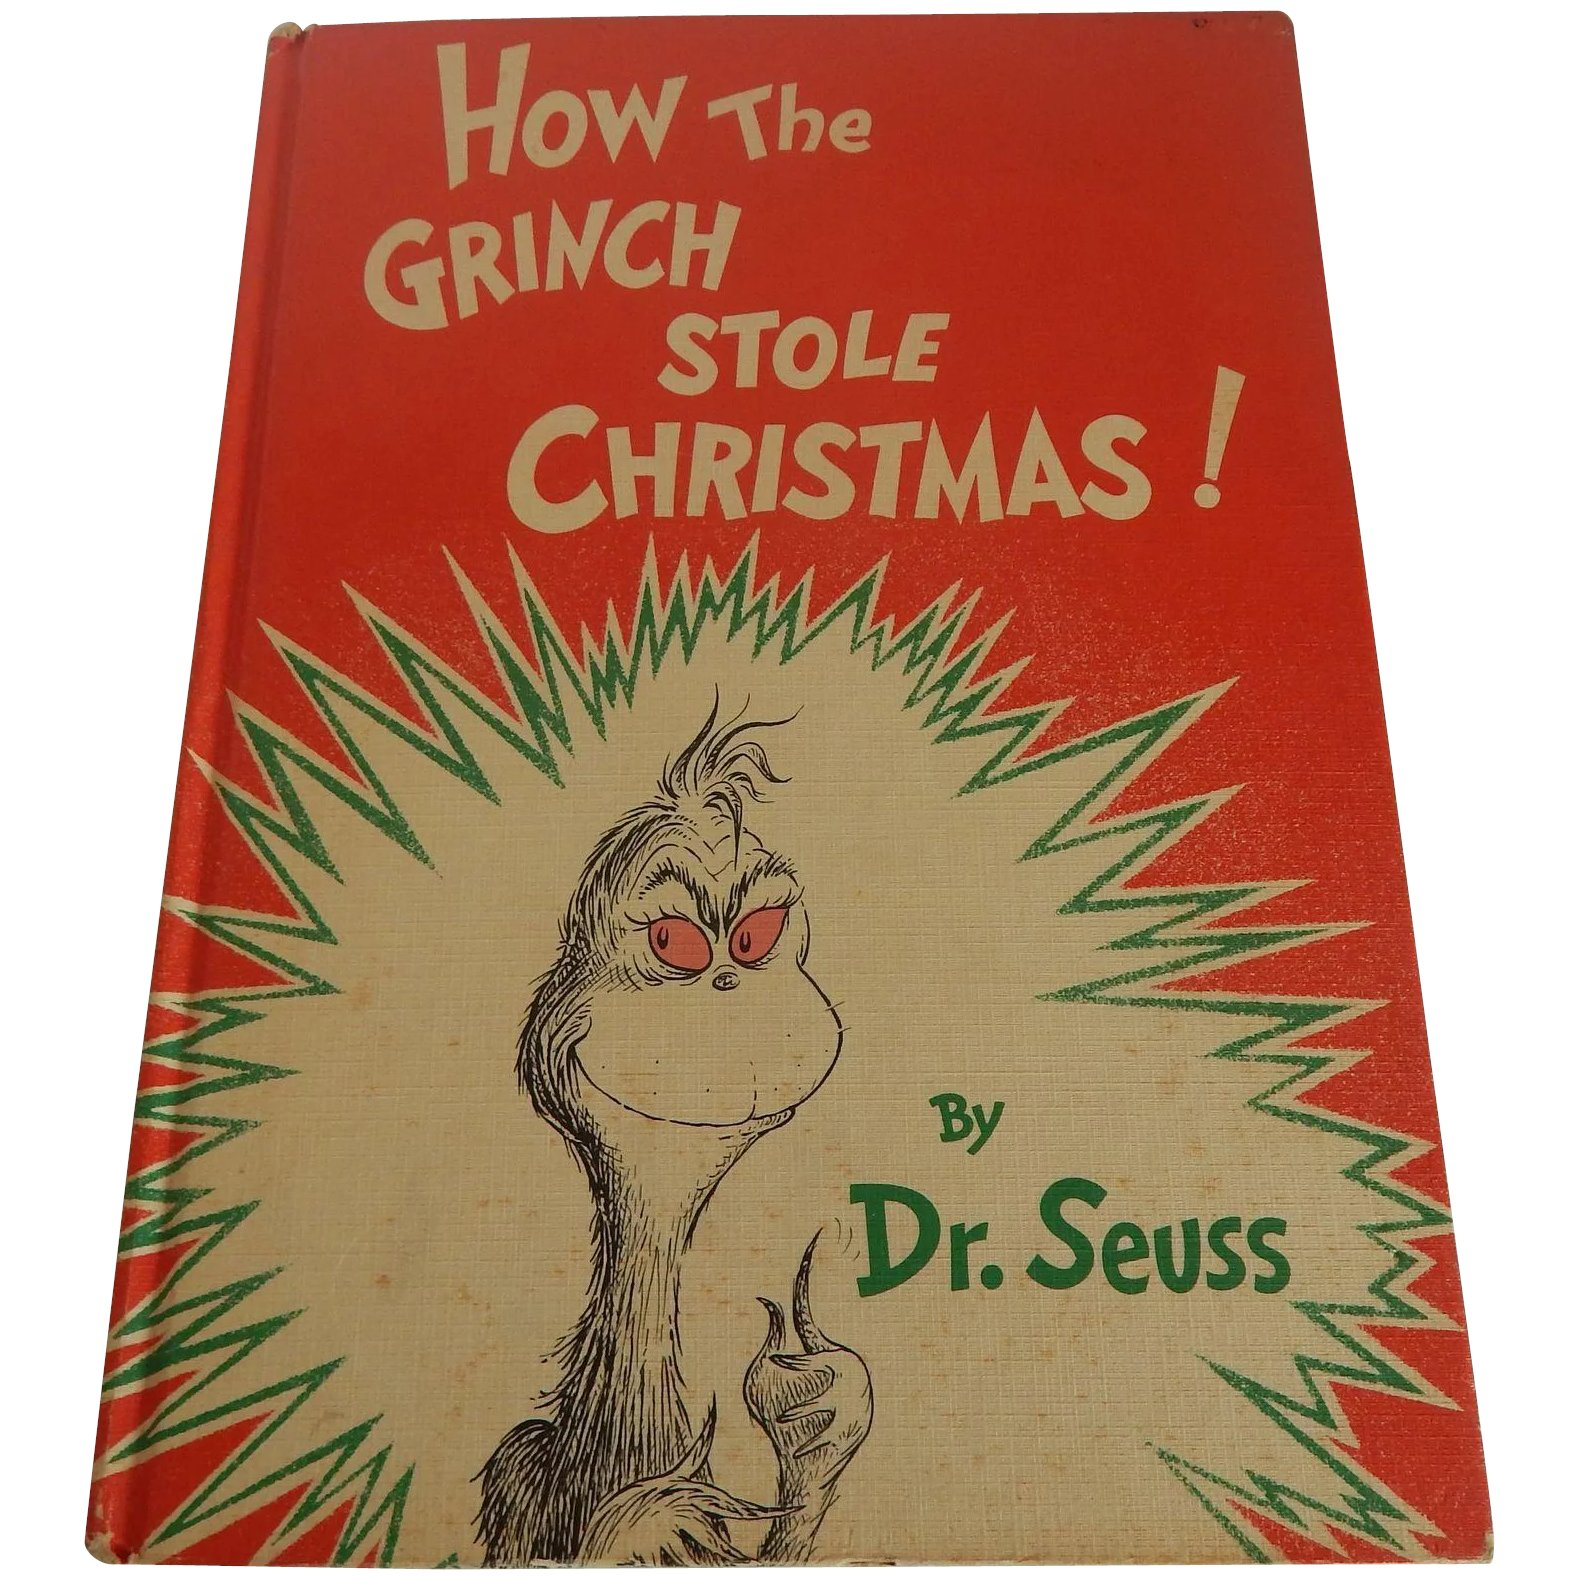 How The Grinch Stole Christmas Book Cover.How The Grinch Stole Christmas Dr Seuss